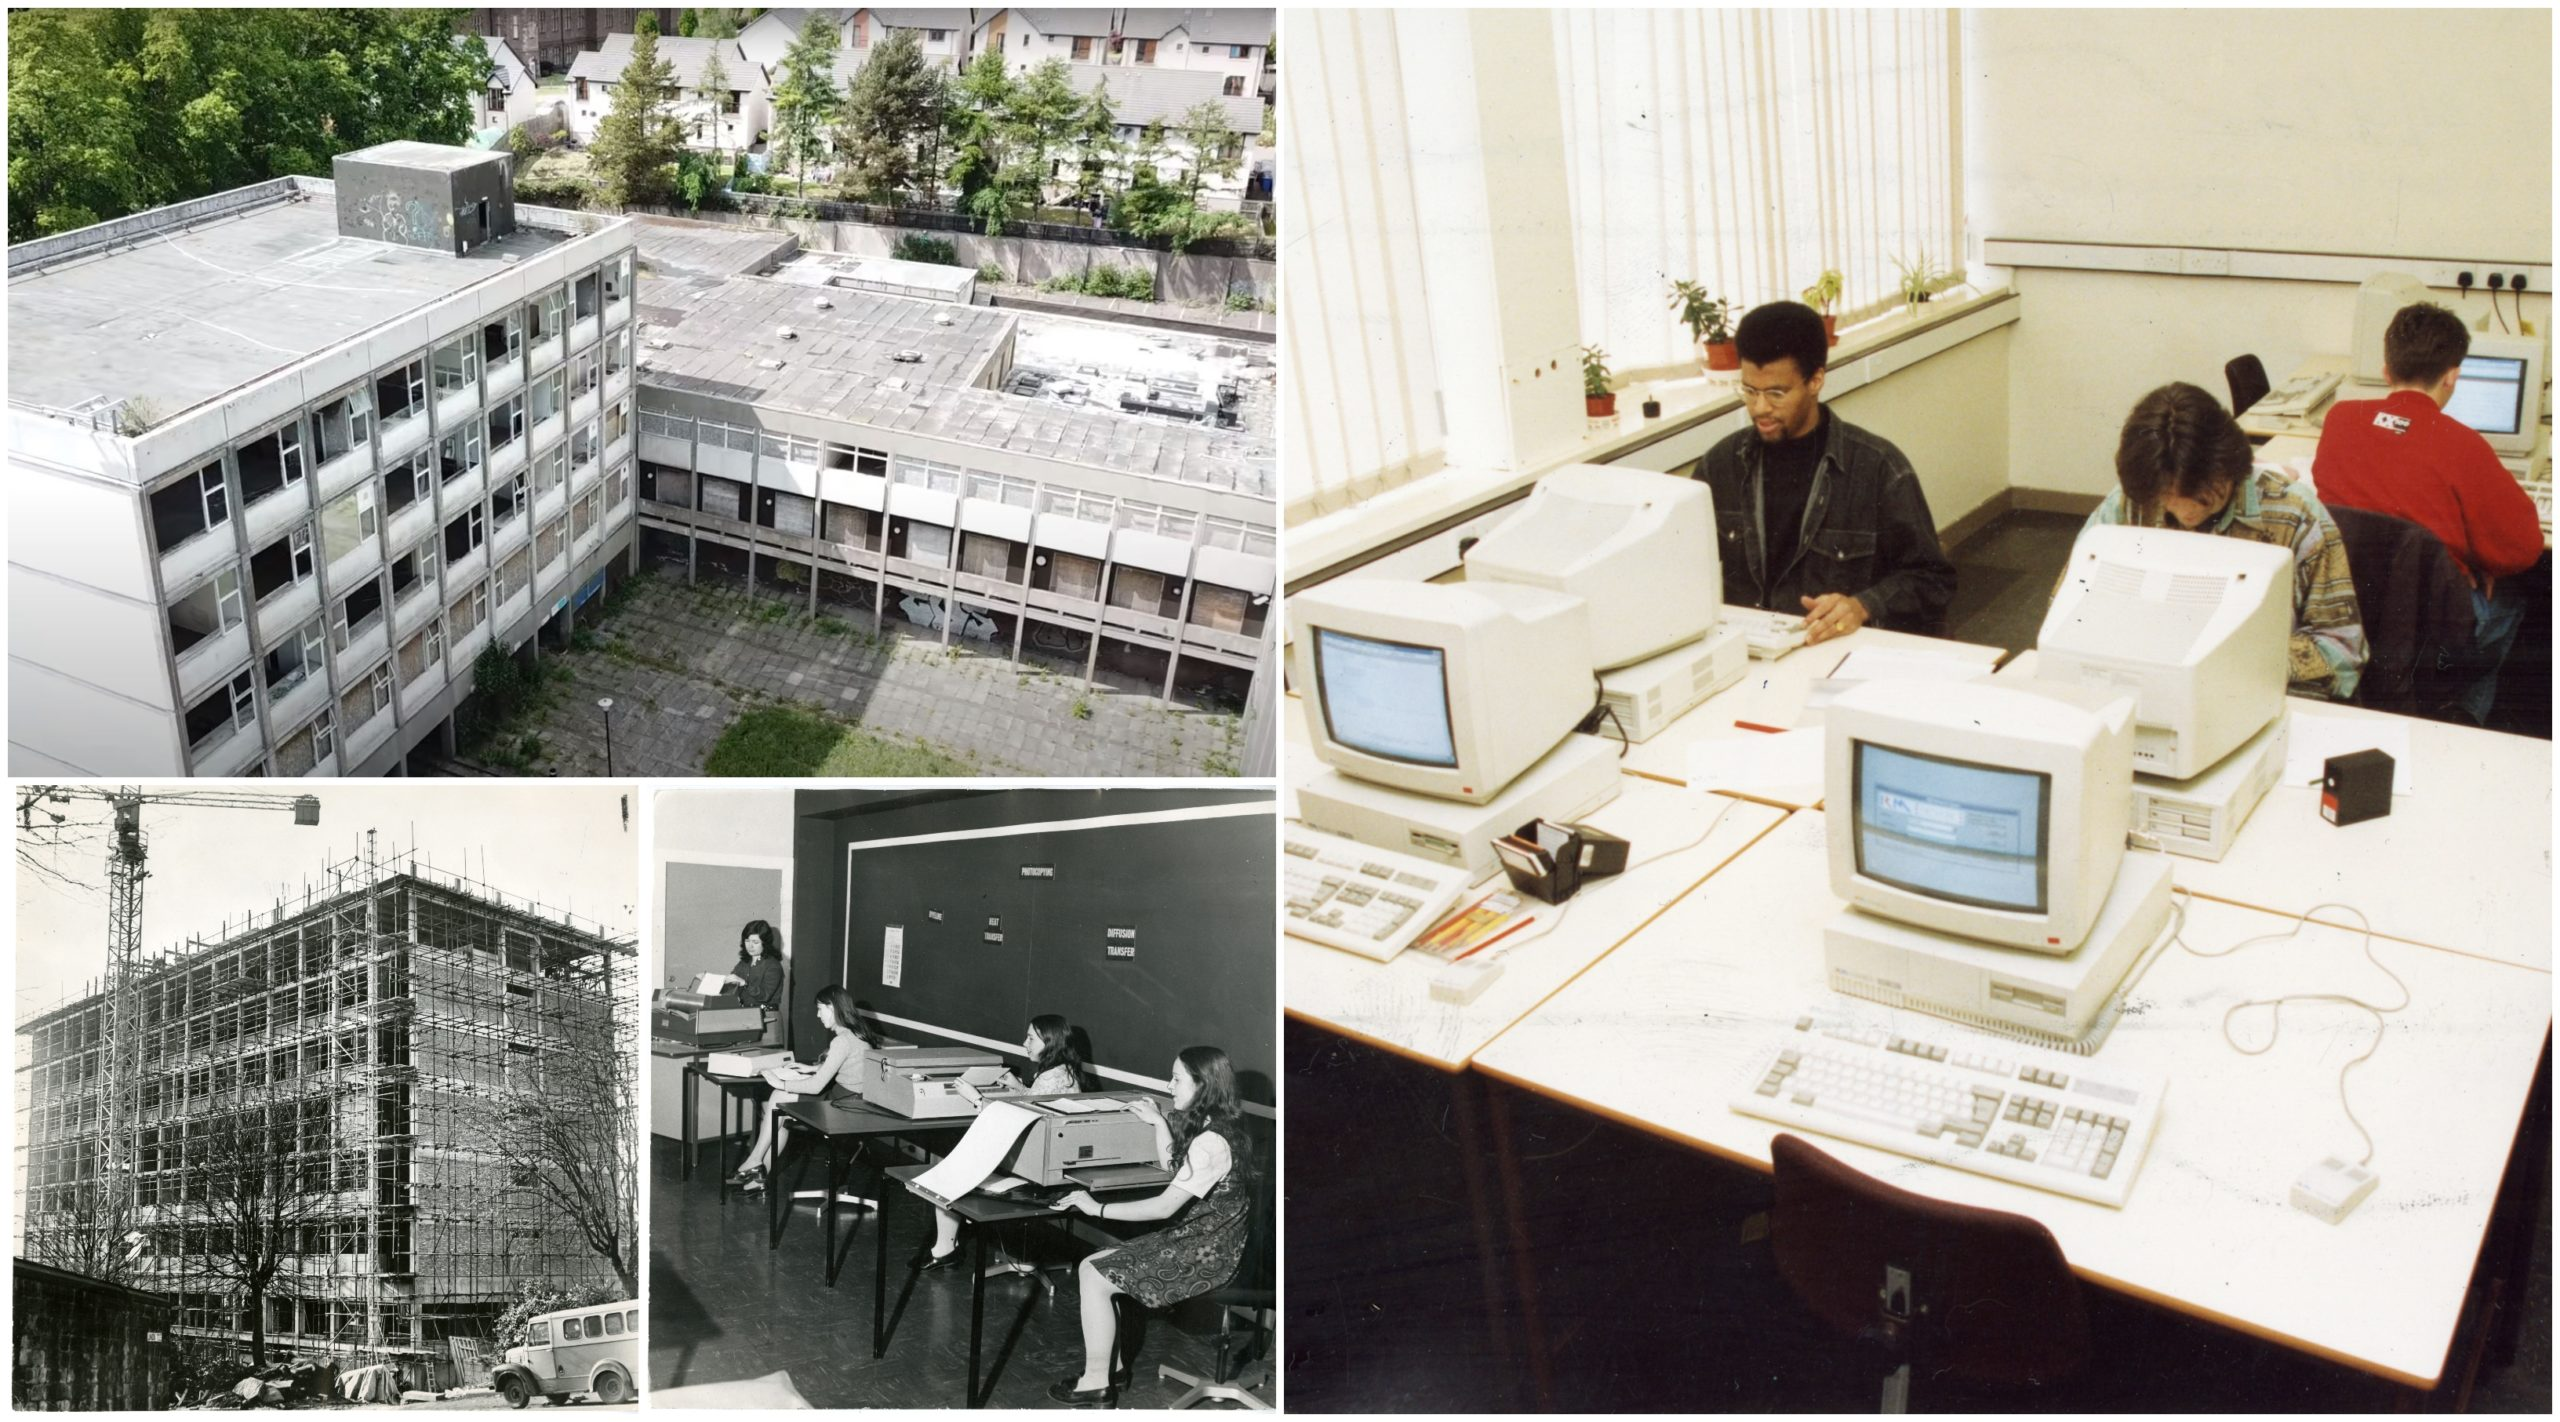 Pictures show Dundee College over the years.